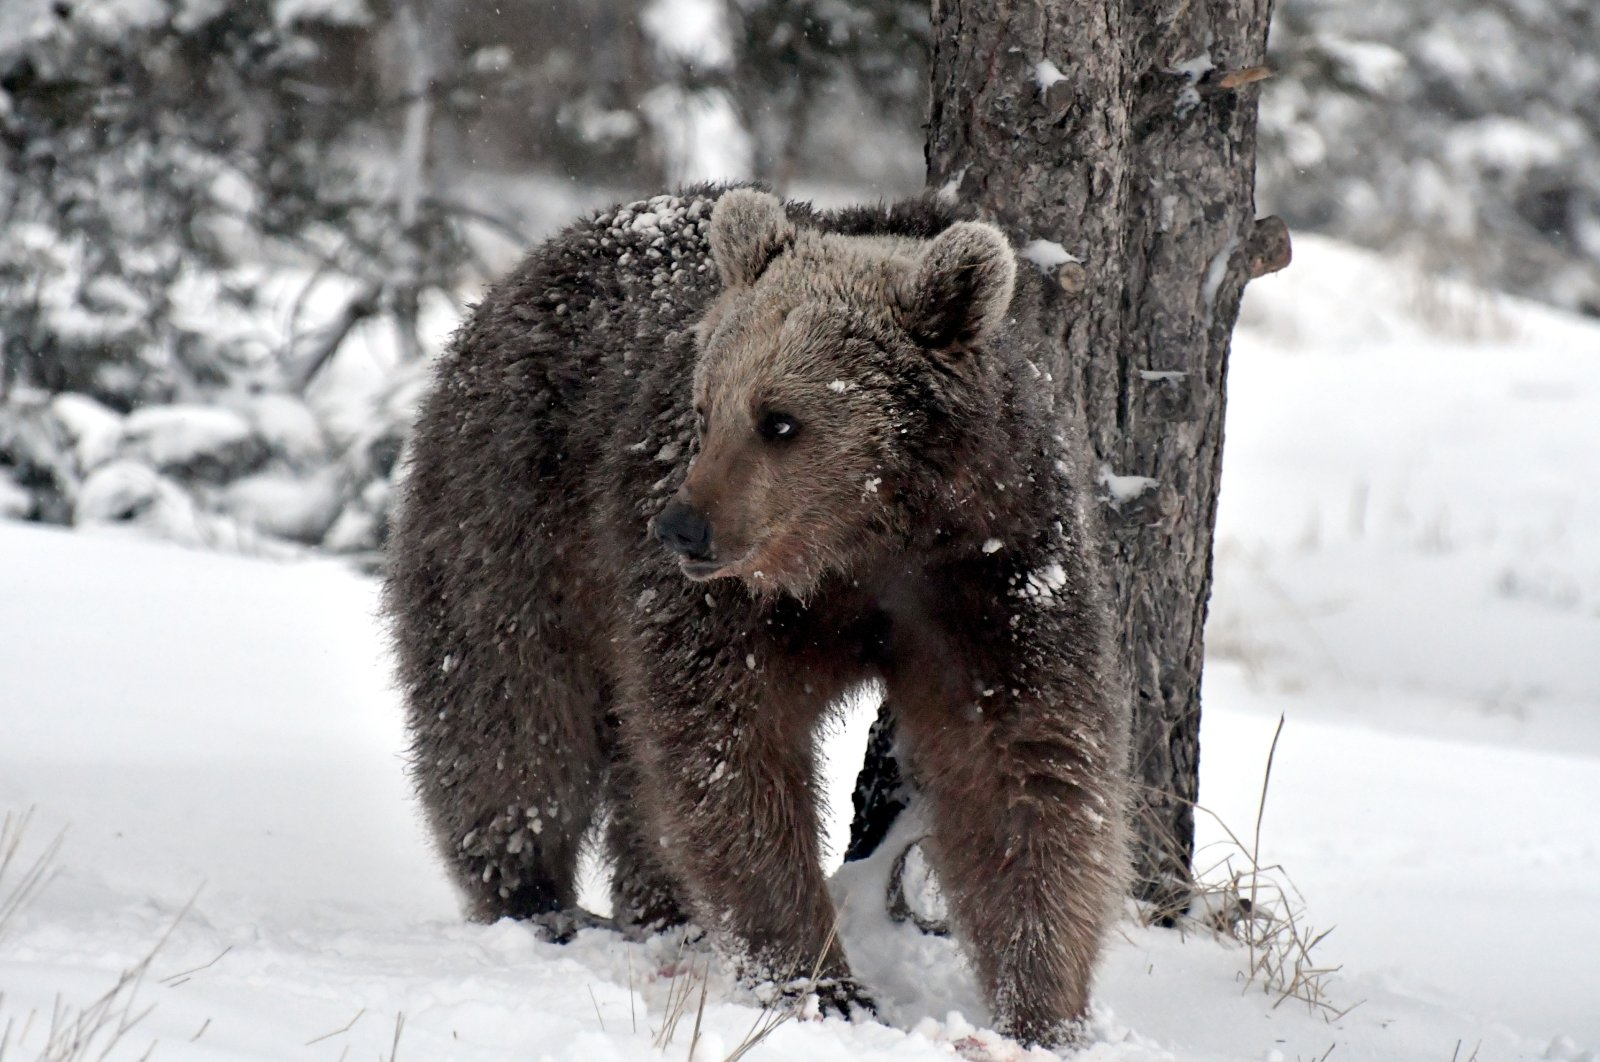 A grizzly bear walks on grass blanketed with snow in woods near Kars, northeastern Turkey, March 29, 2021. (AA Photo)